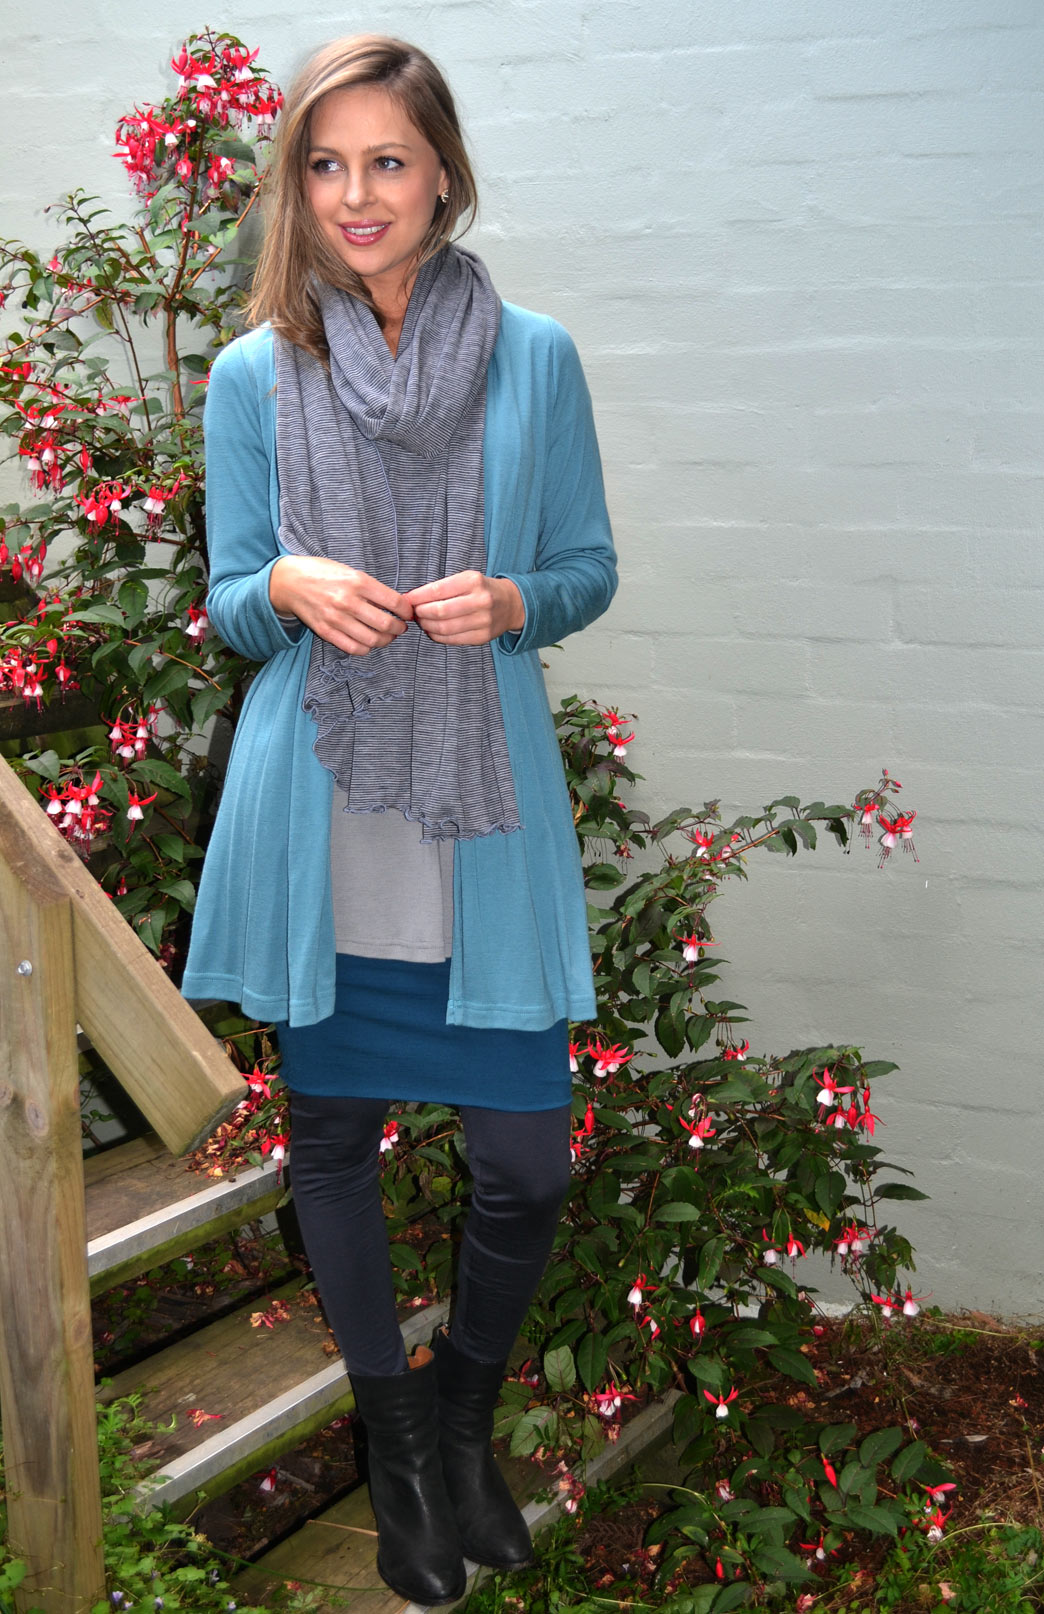 Short Tube Skirt - Women's Storm Teal Short Mini Wool Skirt - Smitten Merino Tasmania Australia